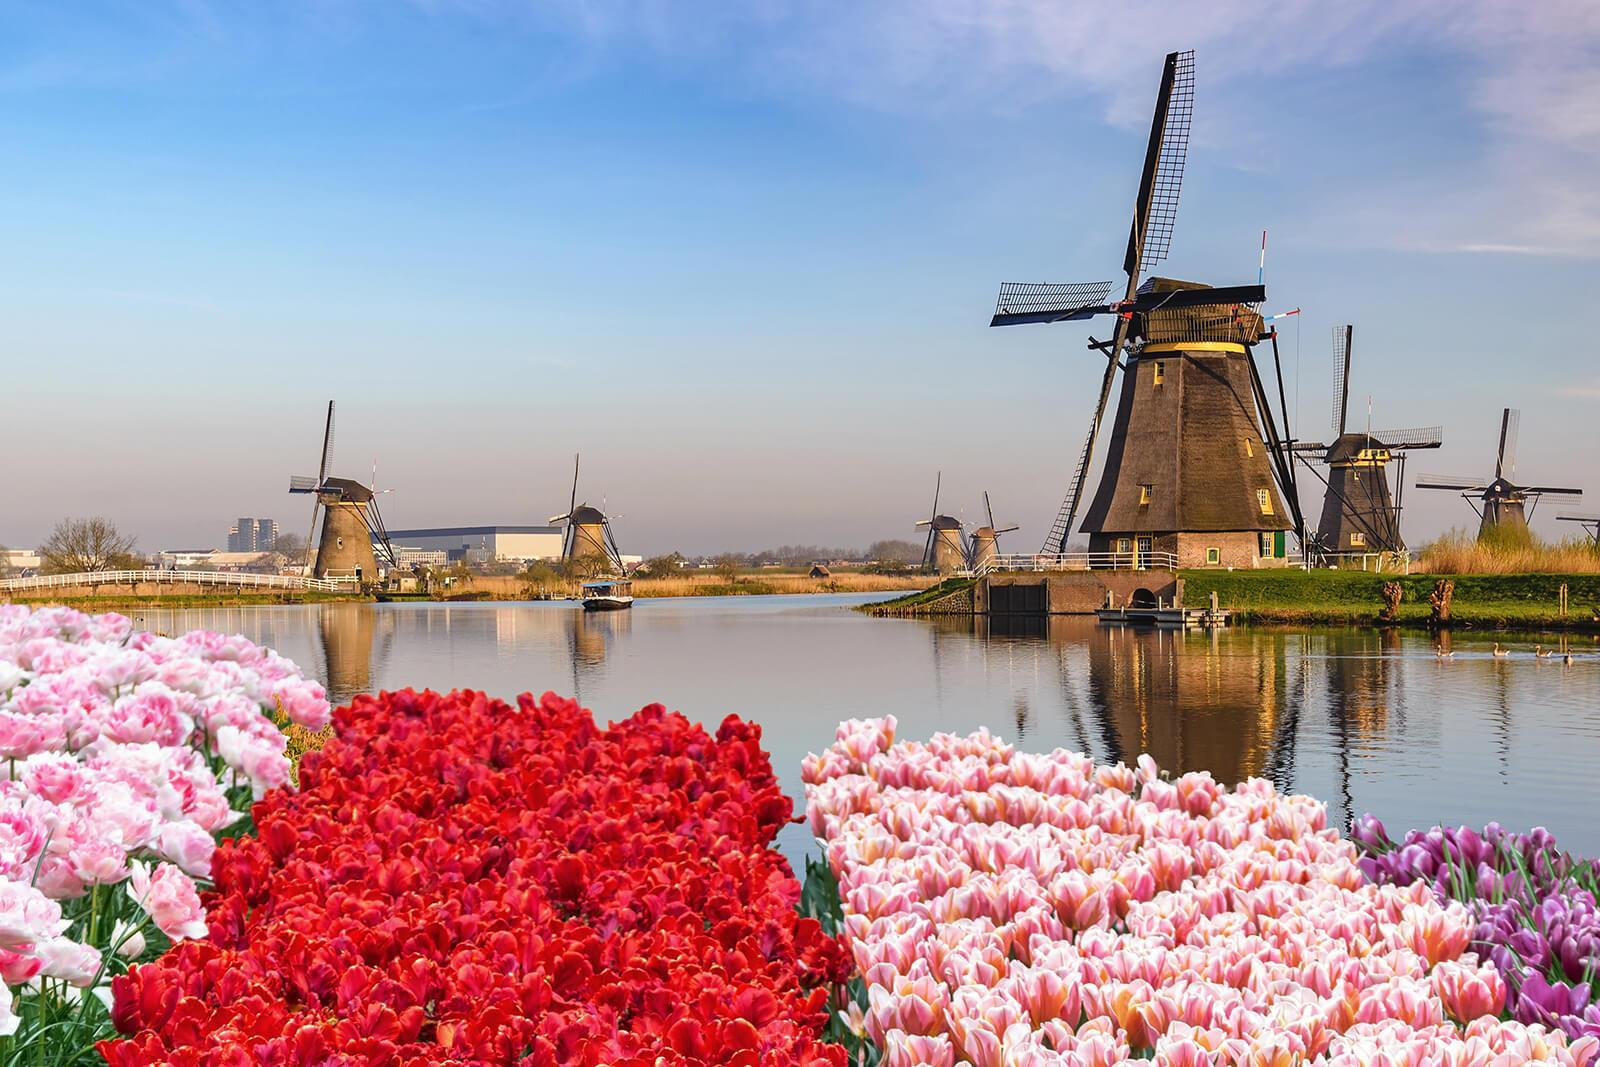 Flooding in the Netherlands drowns multiple tulip bulb crops